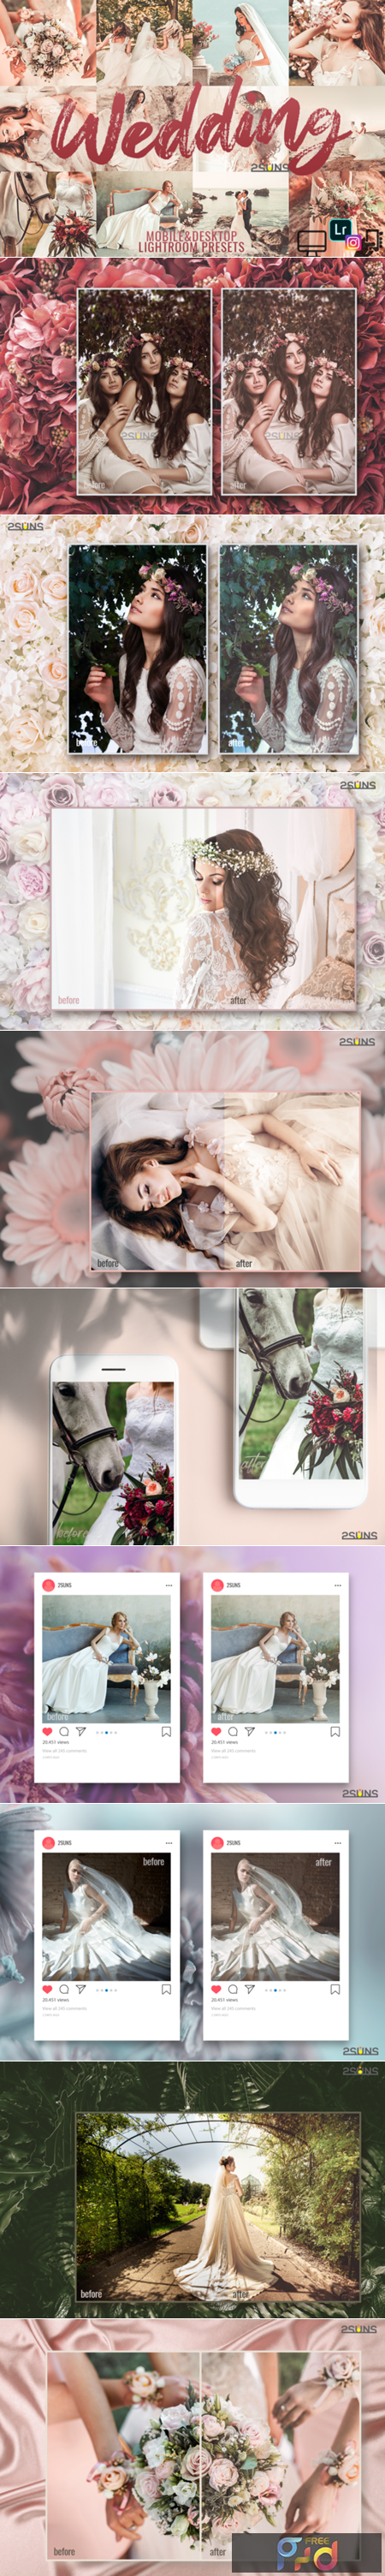 Wedding Presets Lightroom Dng Desktop 1947676 1